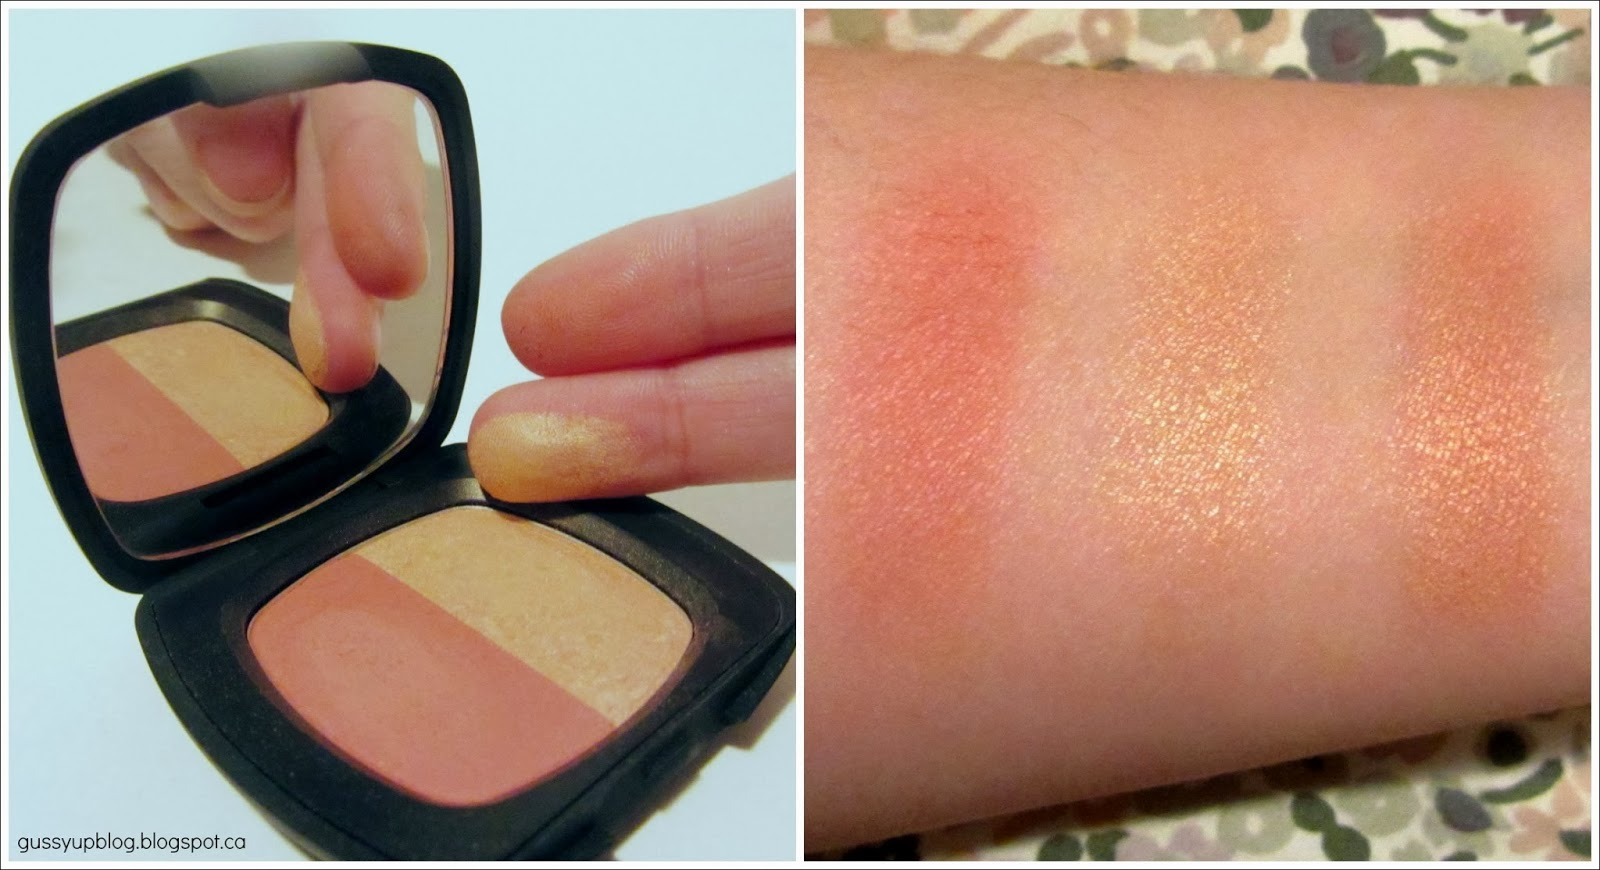 bareMinerals Cheek to Chic, Mini bareMinerals Ready Blush in  The One & Luminizer in The Love Affair Duo, Plus Blush